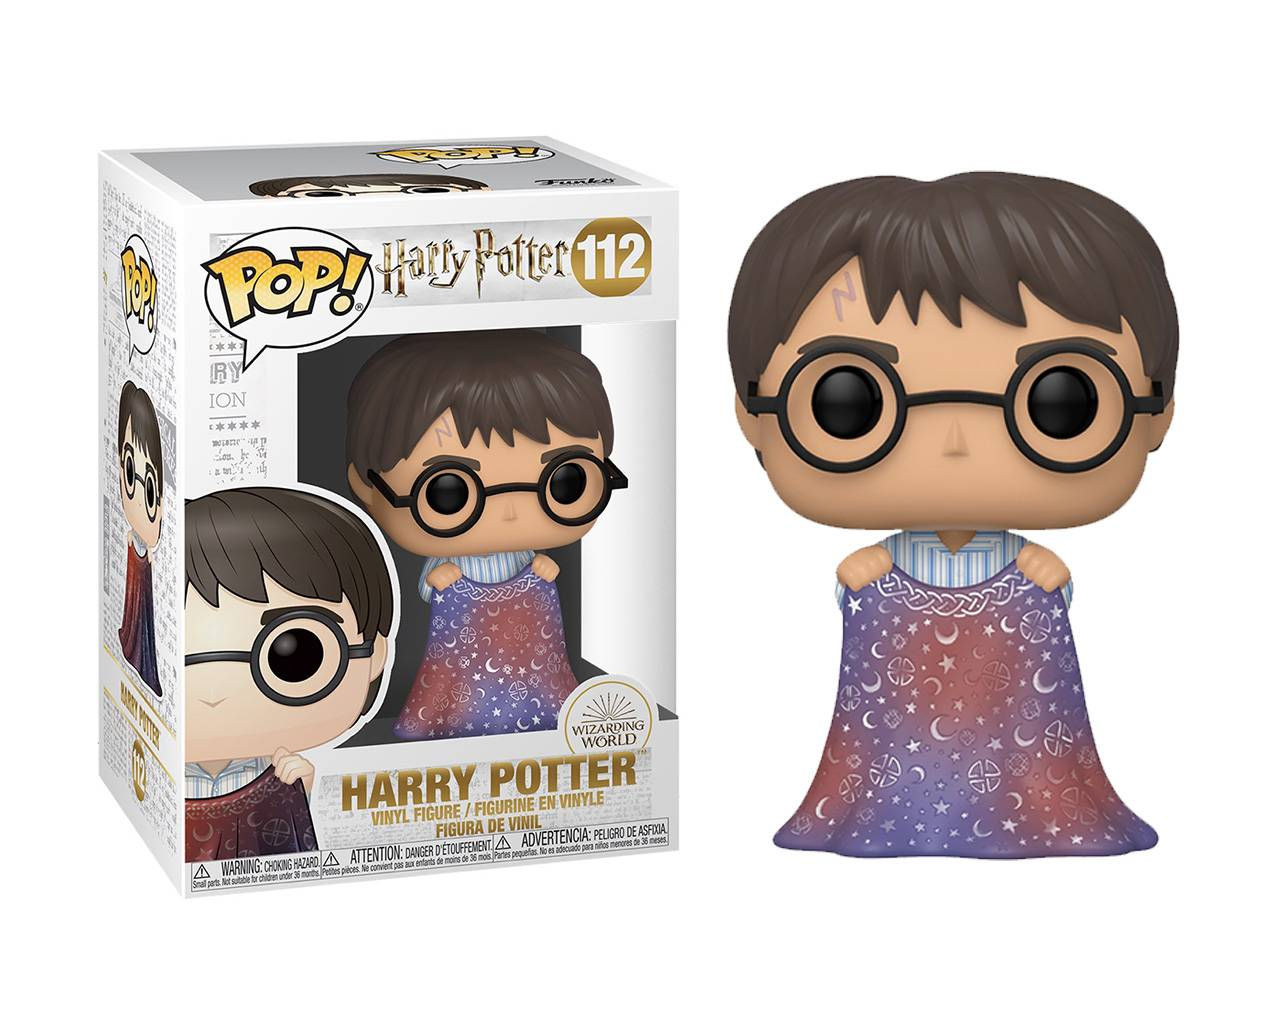 Harry Potter with Invisible Cloak Pop! Vinyl